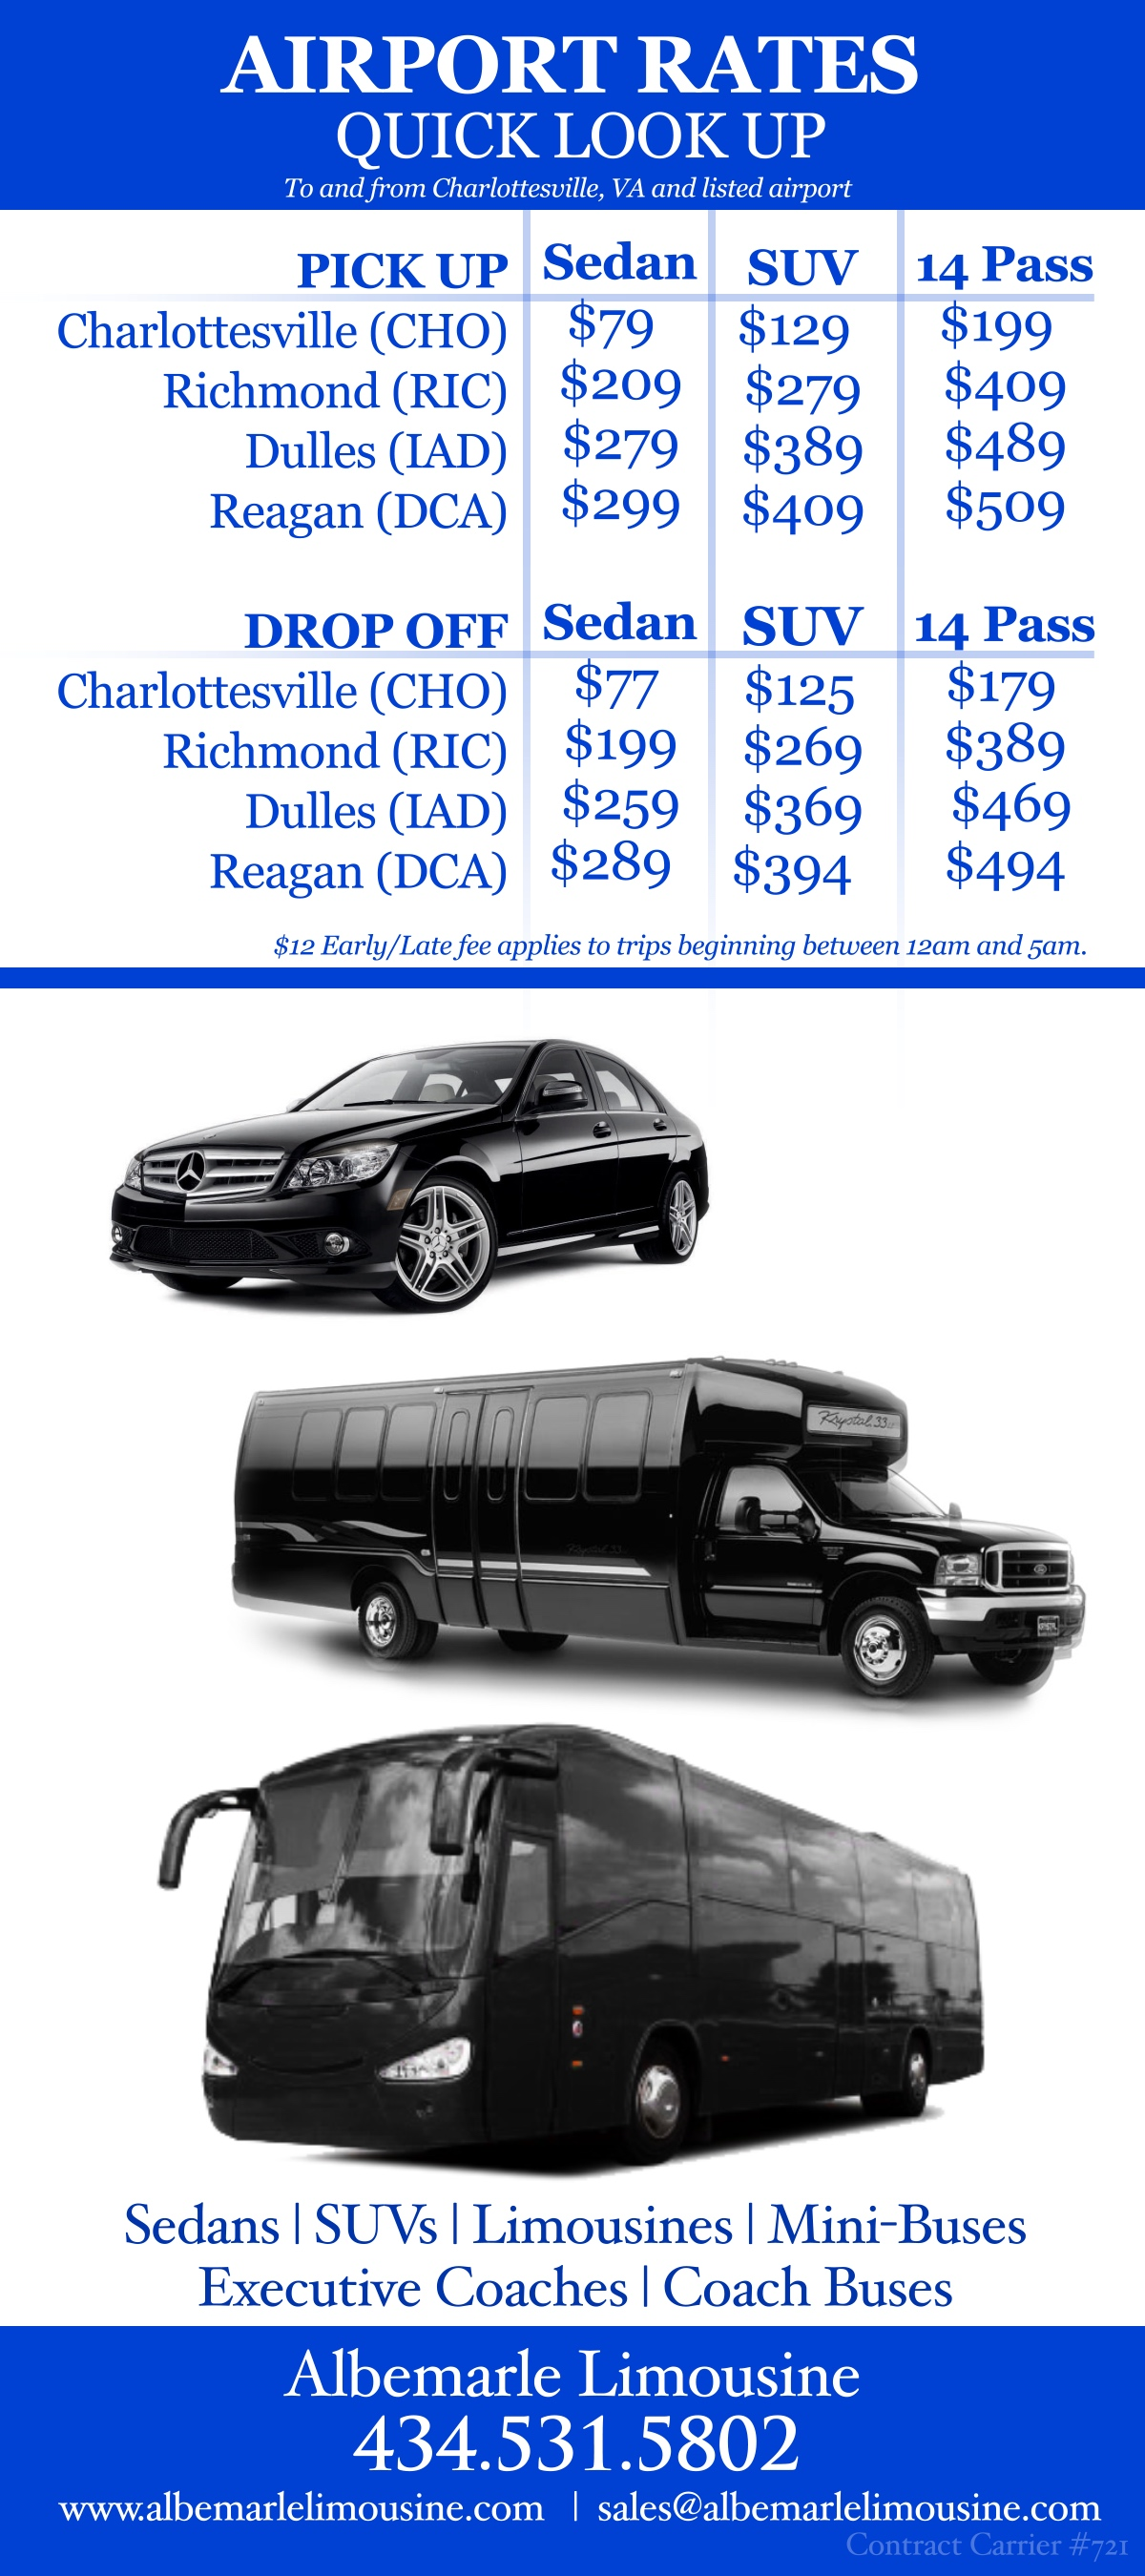 Albemarle Limousine Airport Quick Rate Look Up 11.11.14